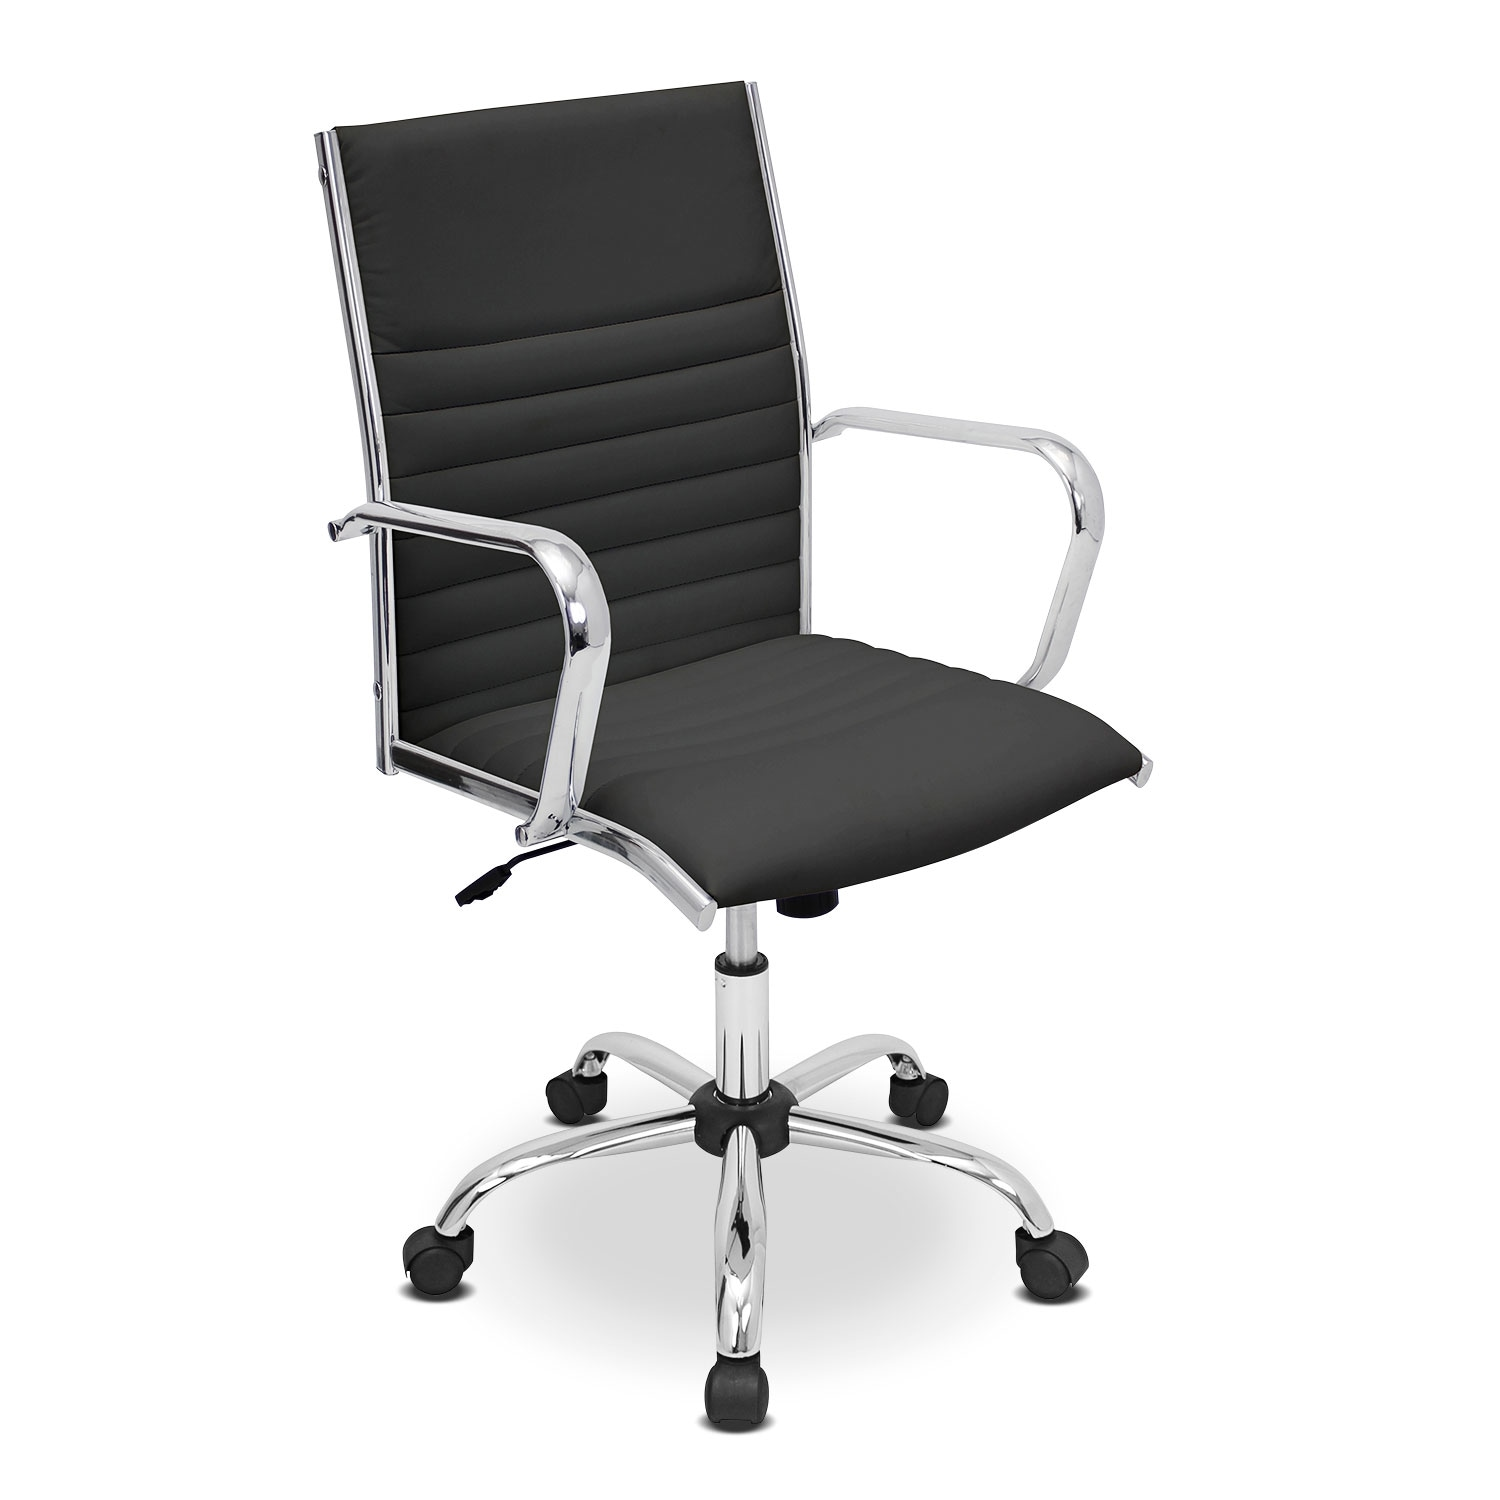 Home Office Furniture - Director Office Arm Chair - Black